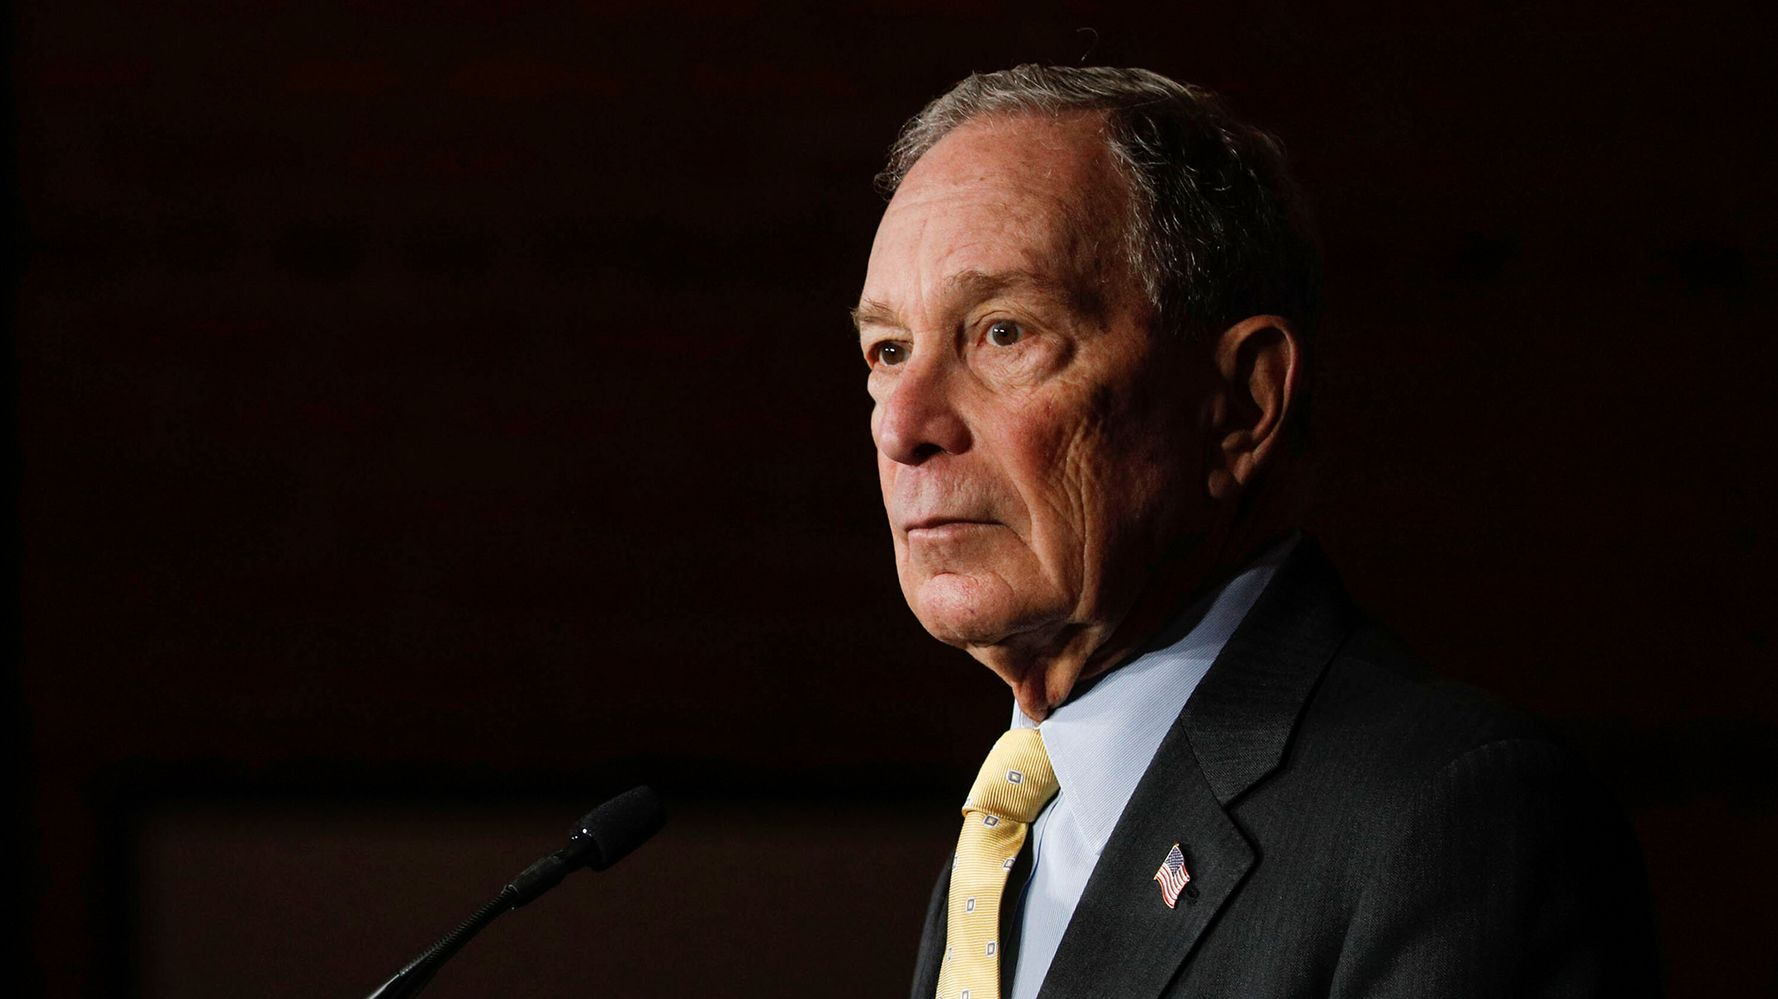 Bloomberg Spent His Entire Career Flattering Wall Street